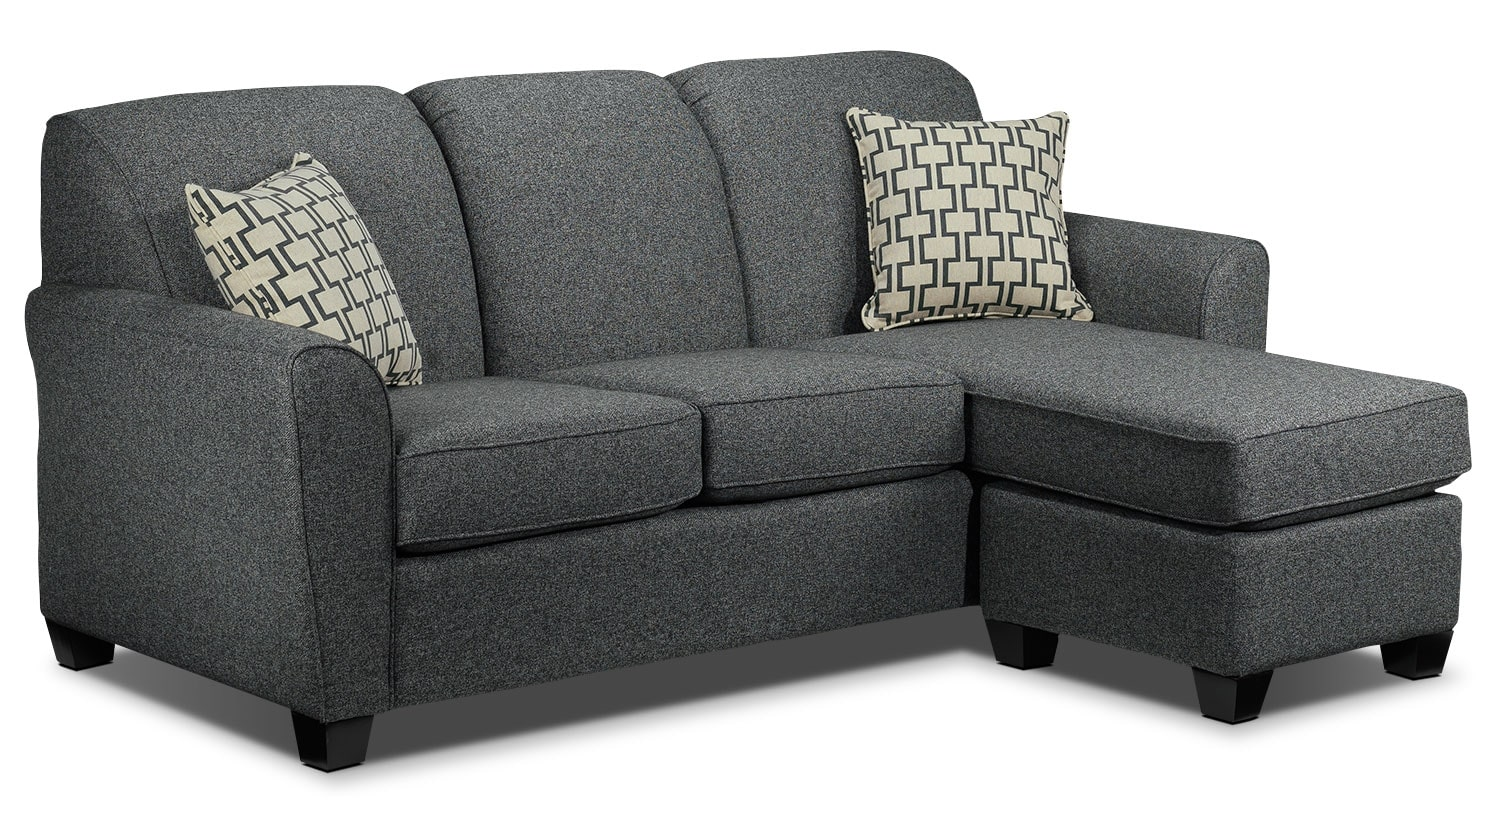 Leons Sofa Beds Athina 2 Piece Right Facing Queen Bed